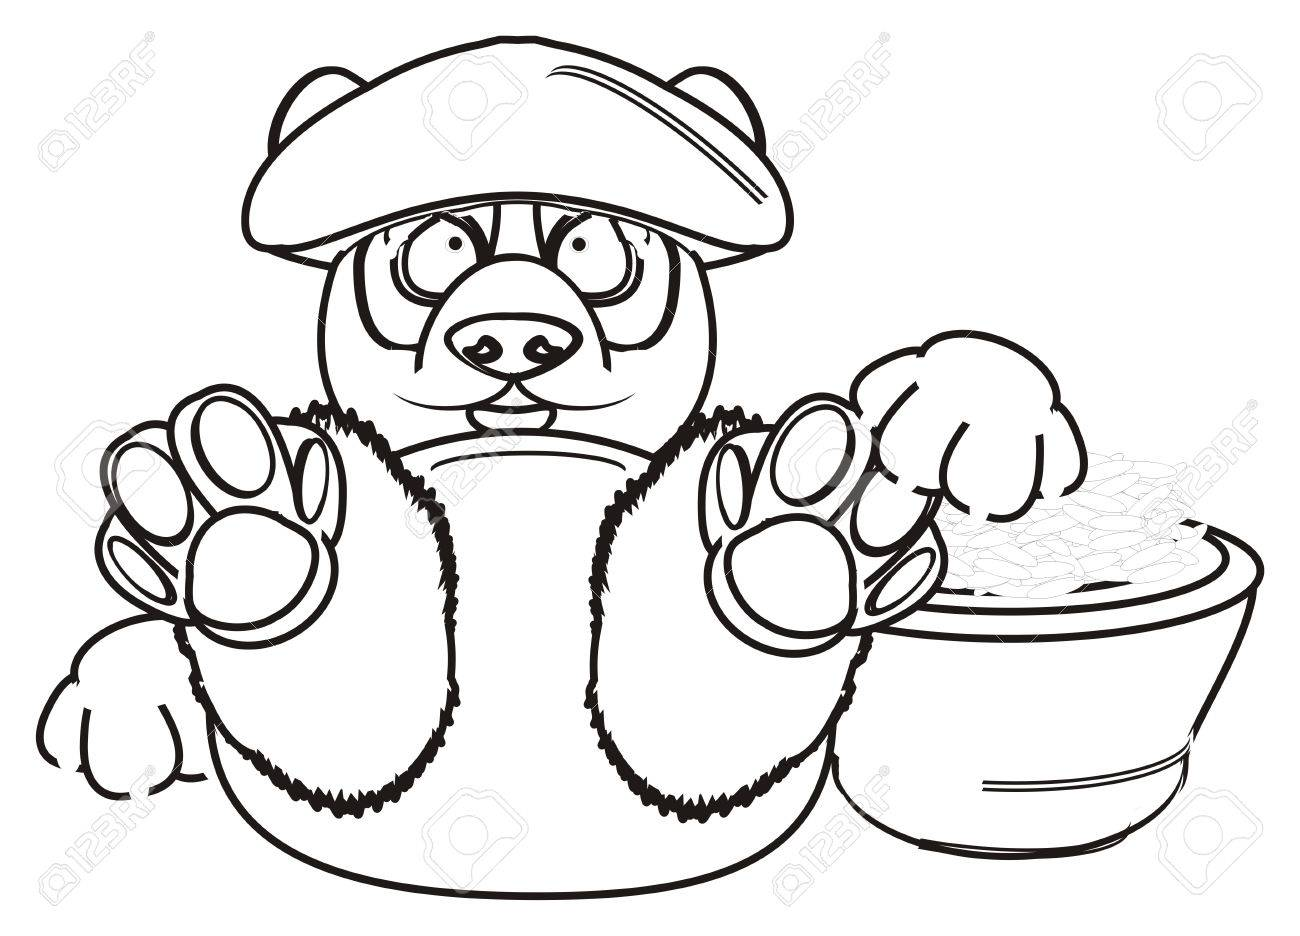 Coloring Panda In Hat Hold A Rice Stock Photo, Picture And Royalty ...